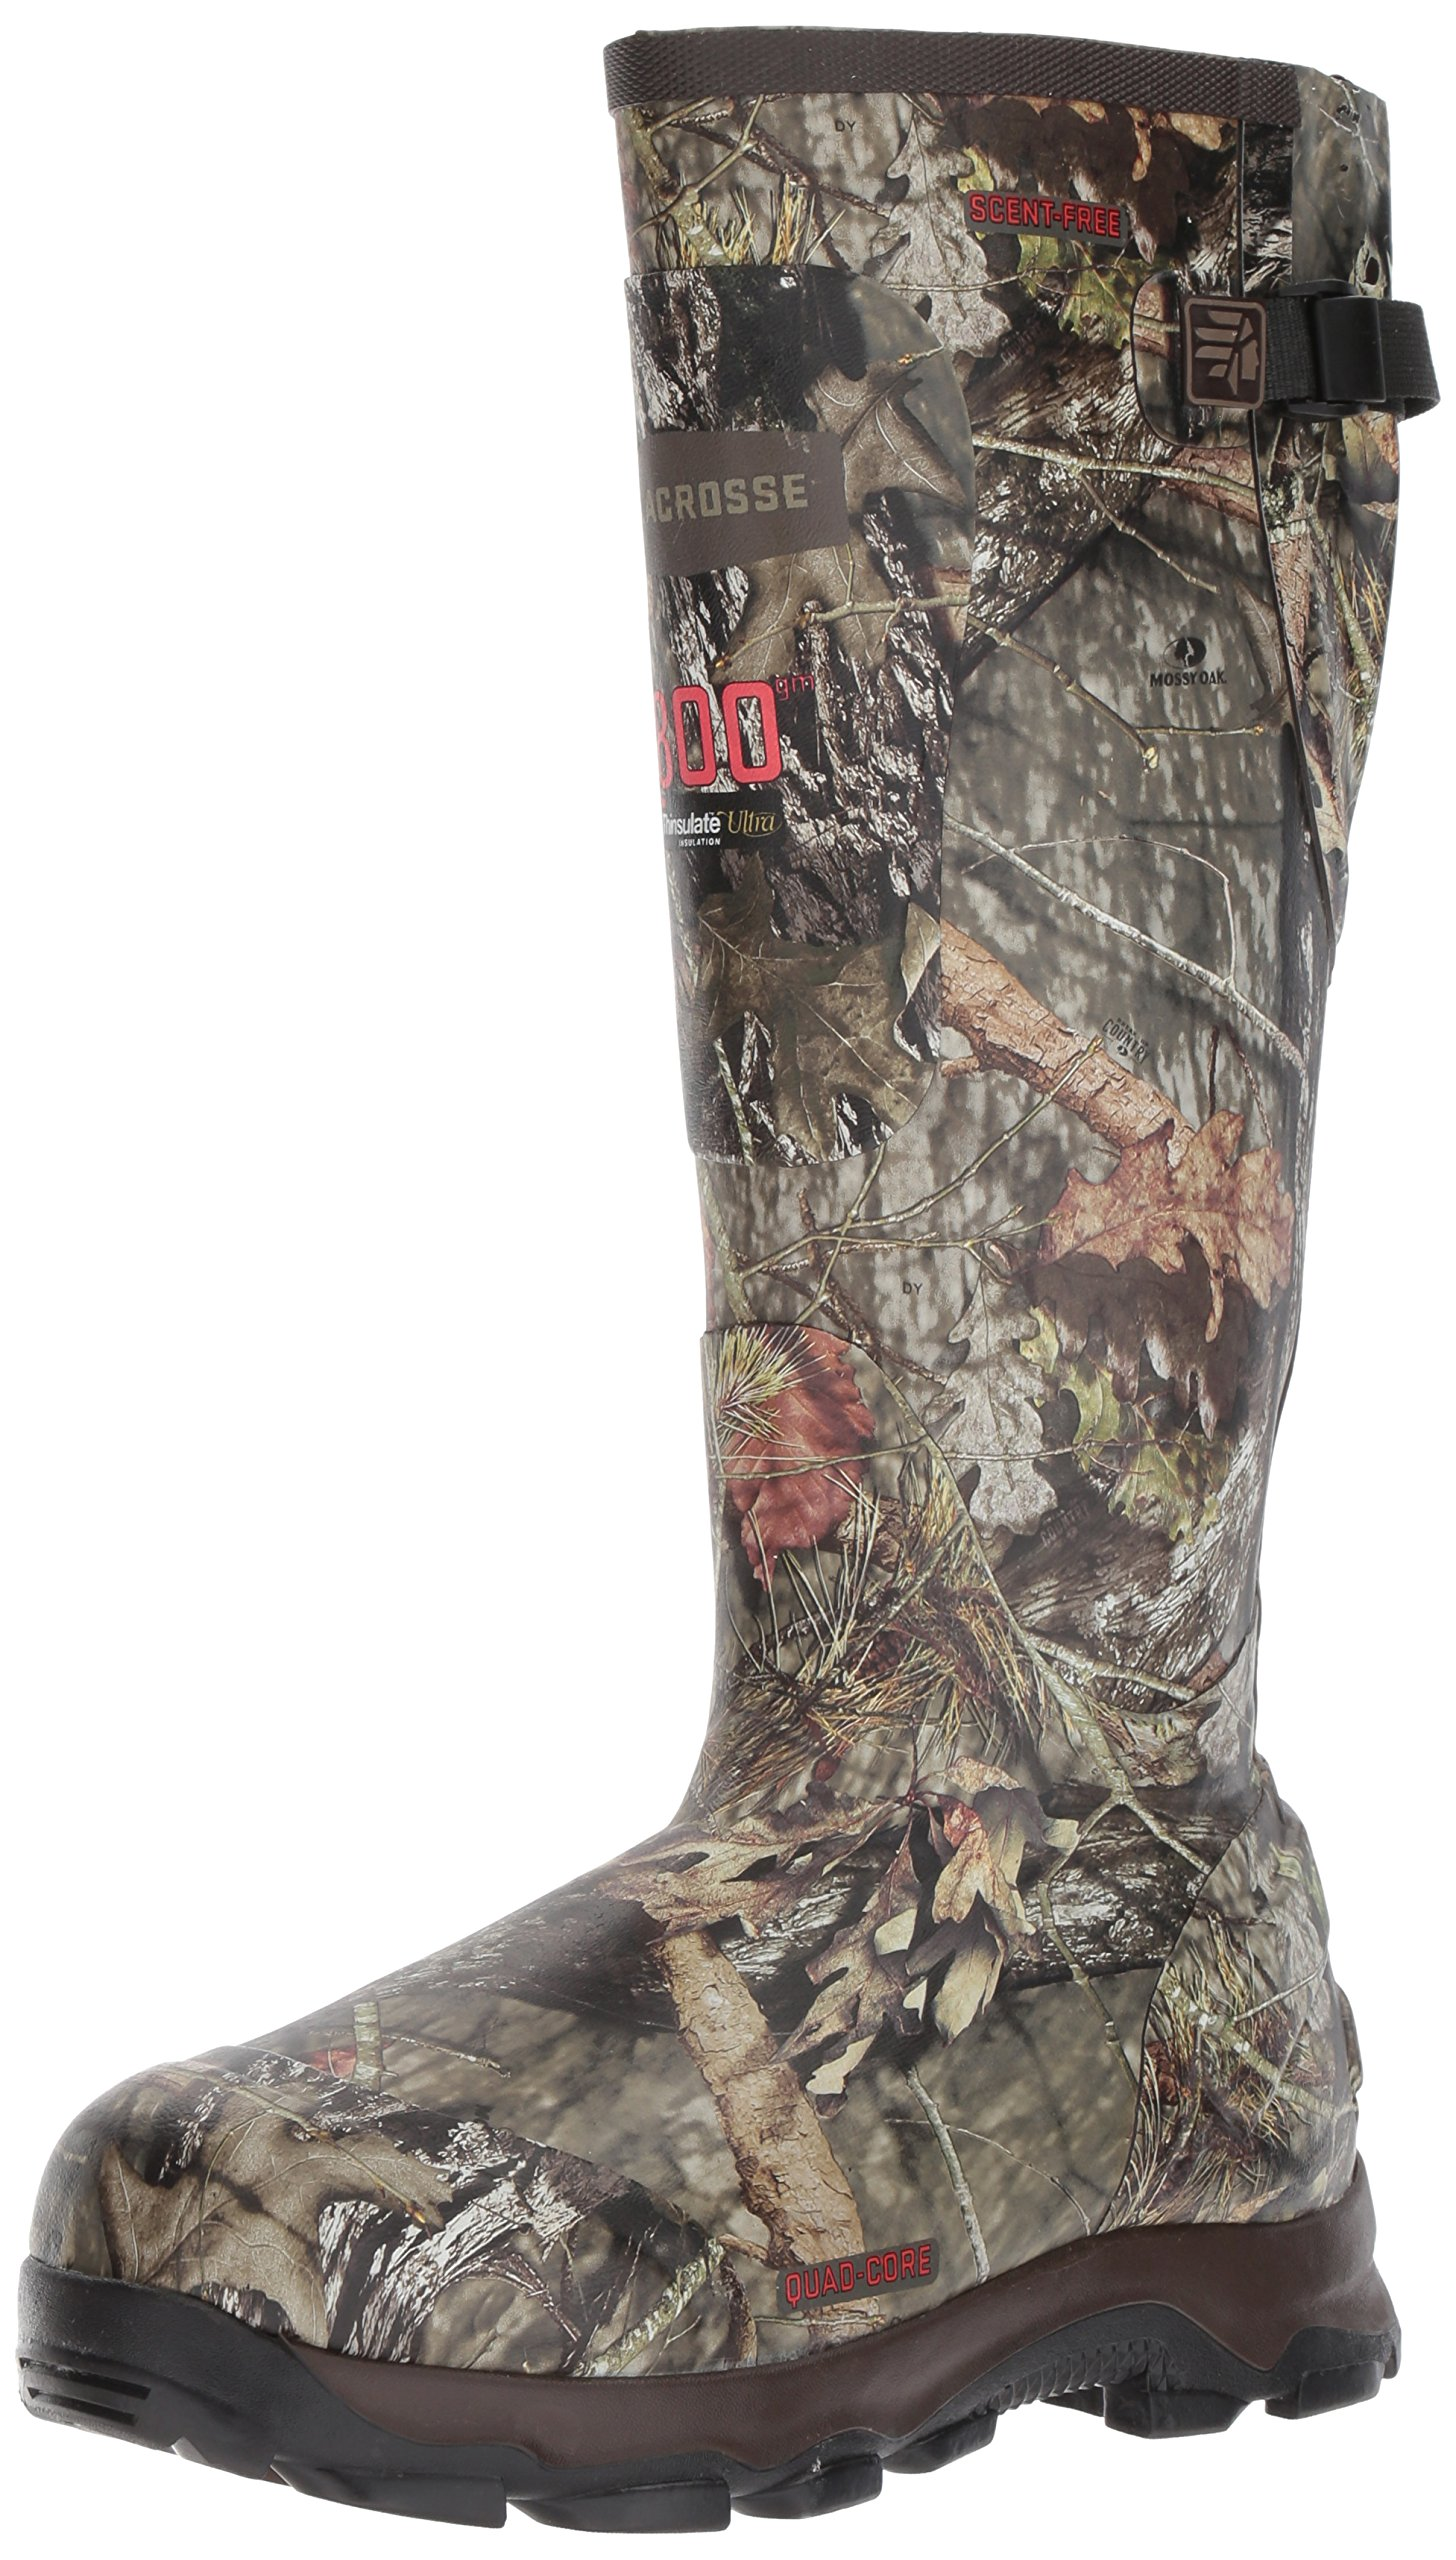 Lacrosse Men's 4xBurly 18'' 800G Hunting Shoes, Mossy Oak Break Up Country, 6 D US